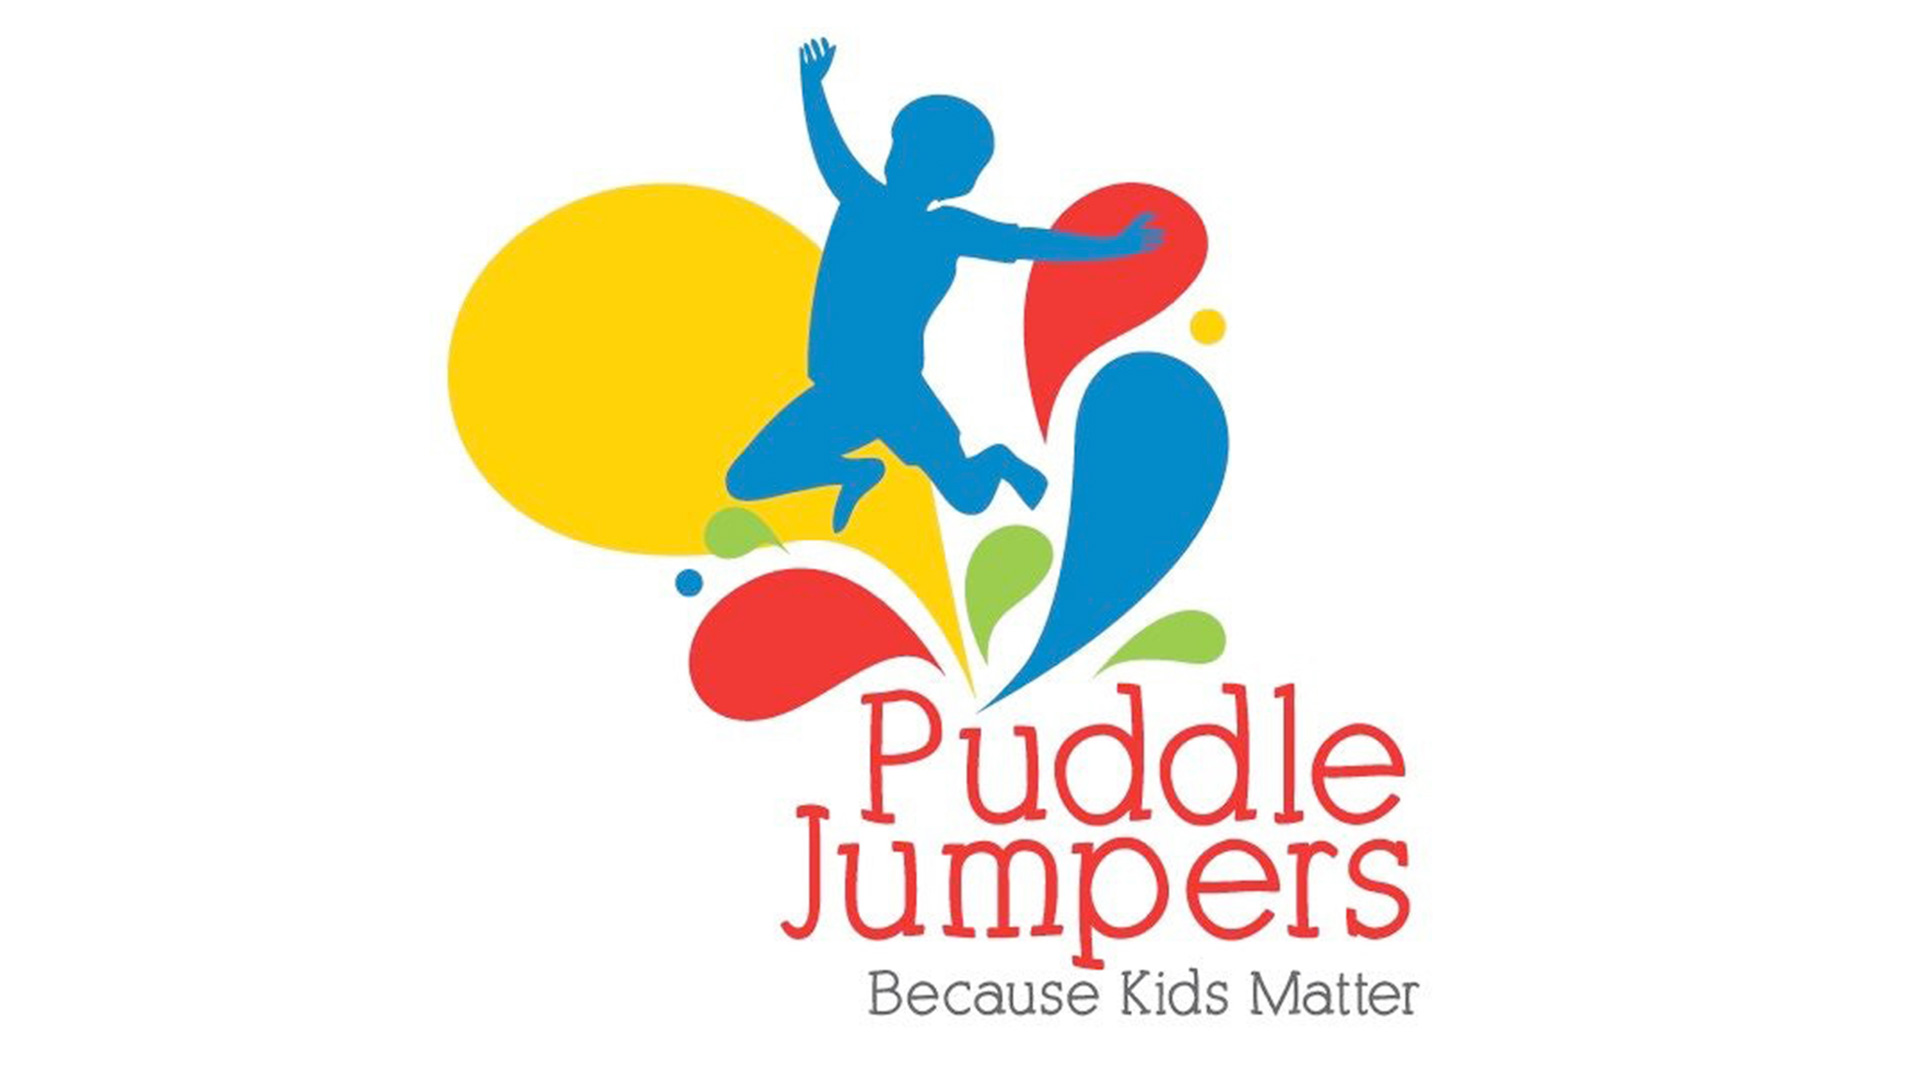 puddle-jumpers-1080p